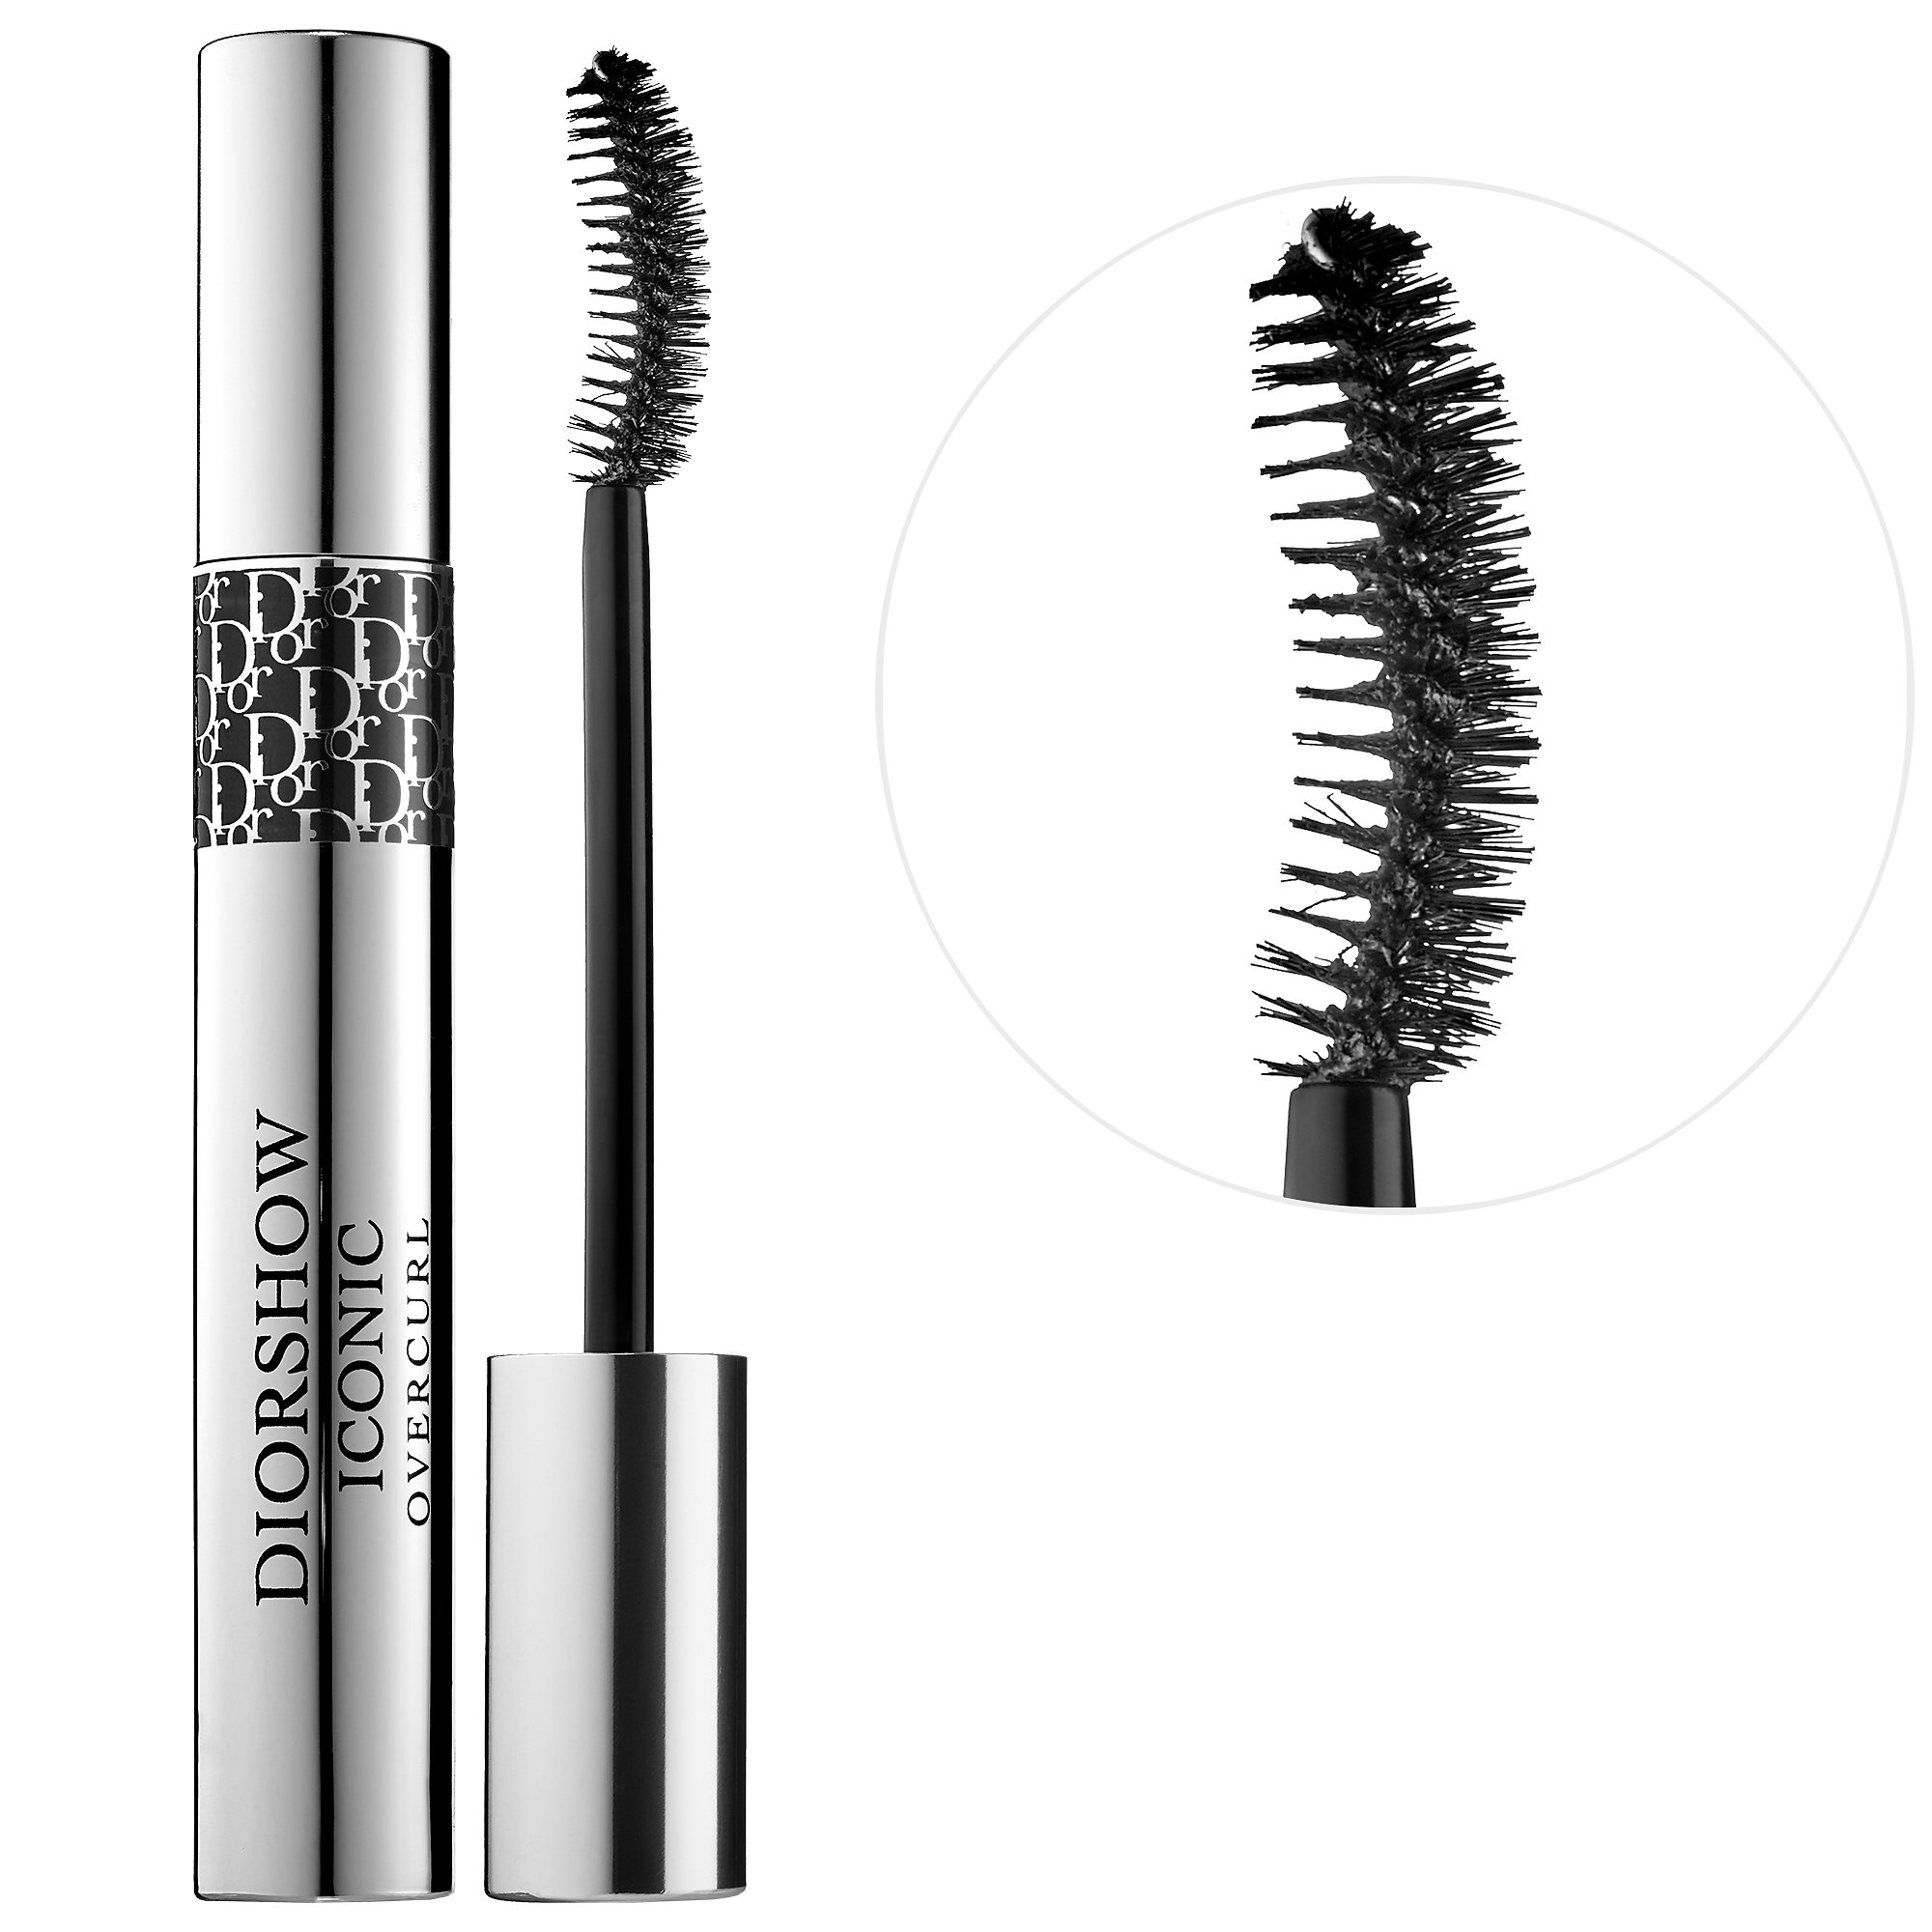 Diorshow Iconic Overcurl Mascara - An old favorite that was rediscovered this year! I'm a big fan of natural bristle brushes and their ability to really grip the lashes. This one in particular has the perfect formula that is not too wet or too dry and the curled brush means mega volume. If you need even more volume, you can build this mascara beautifully without getting spidery.